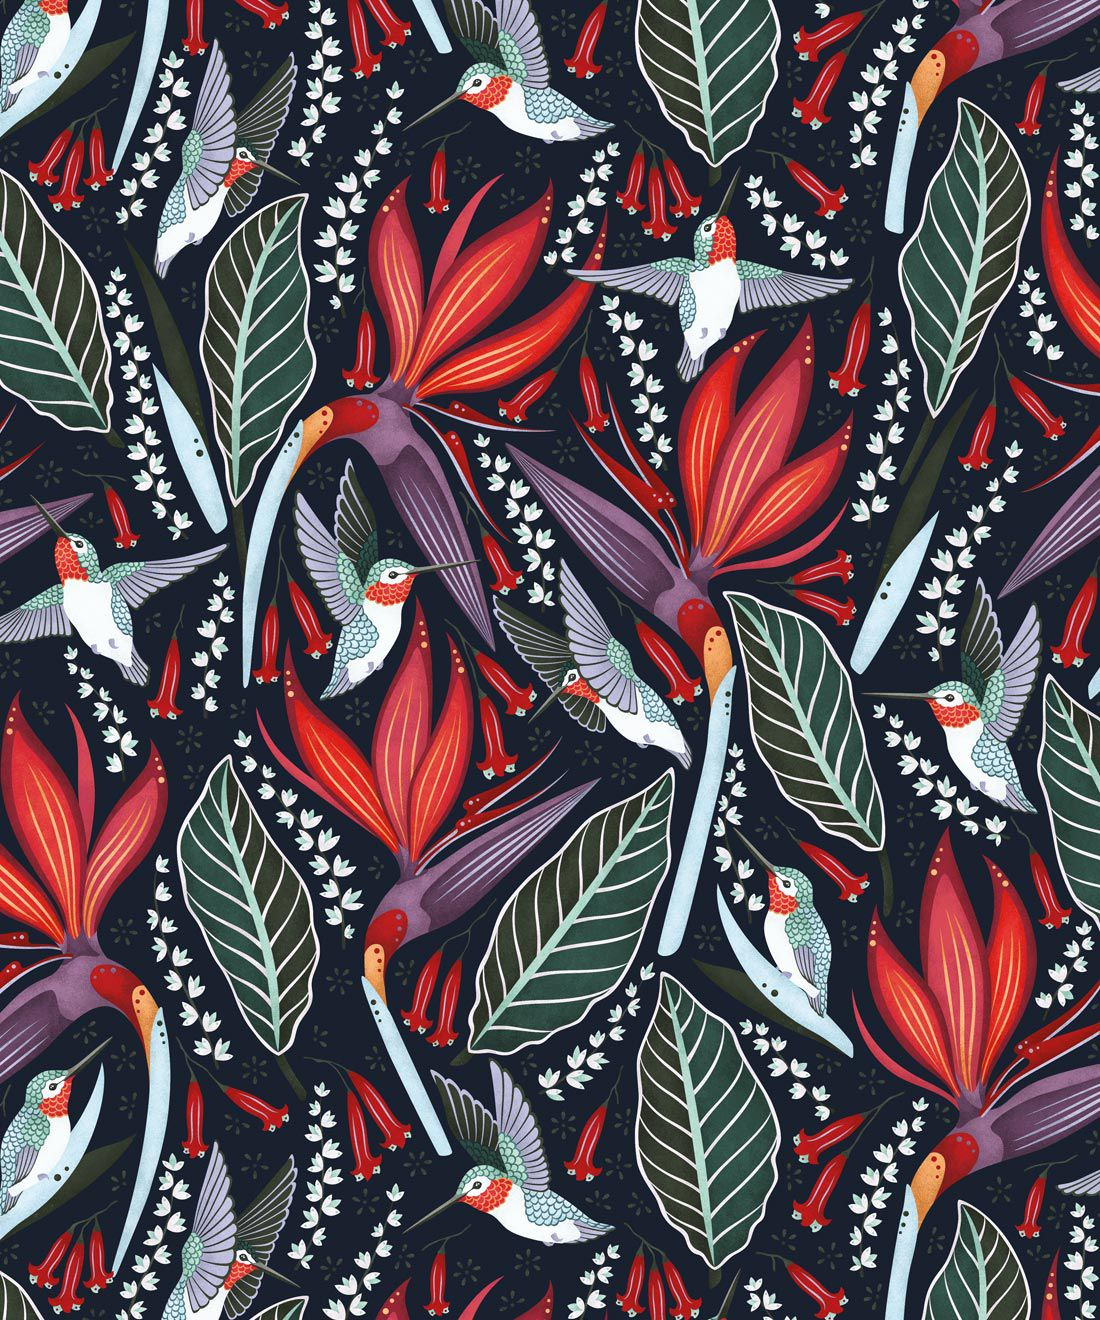 Hummingbird Wallpaper • Birds Of Paradise Flower • Bird Wallpaper • Red Flowers • Black Cherry